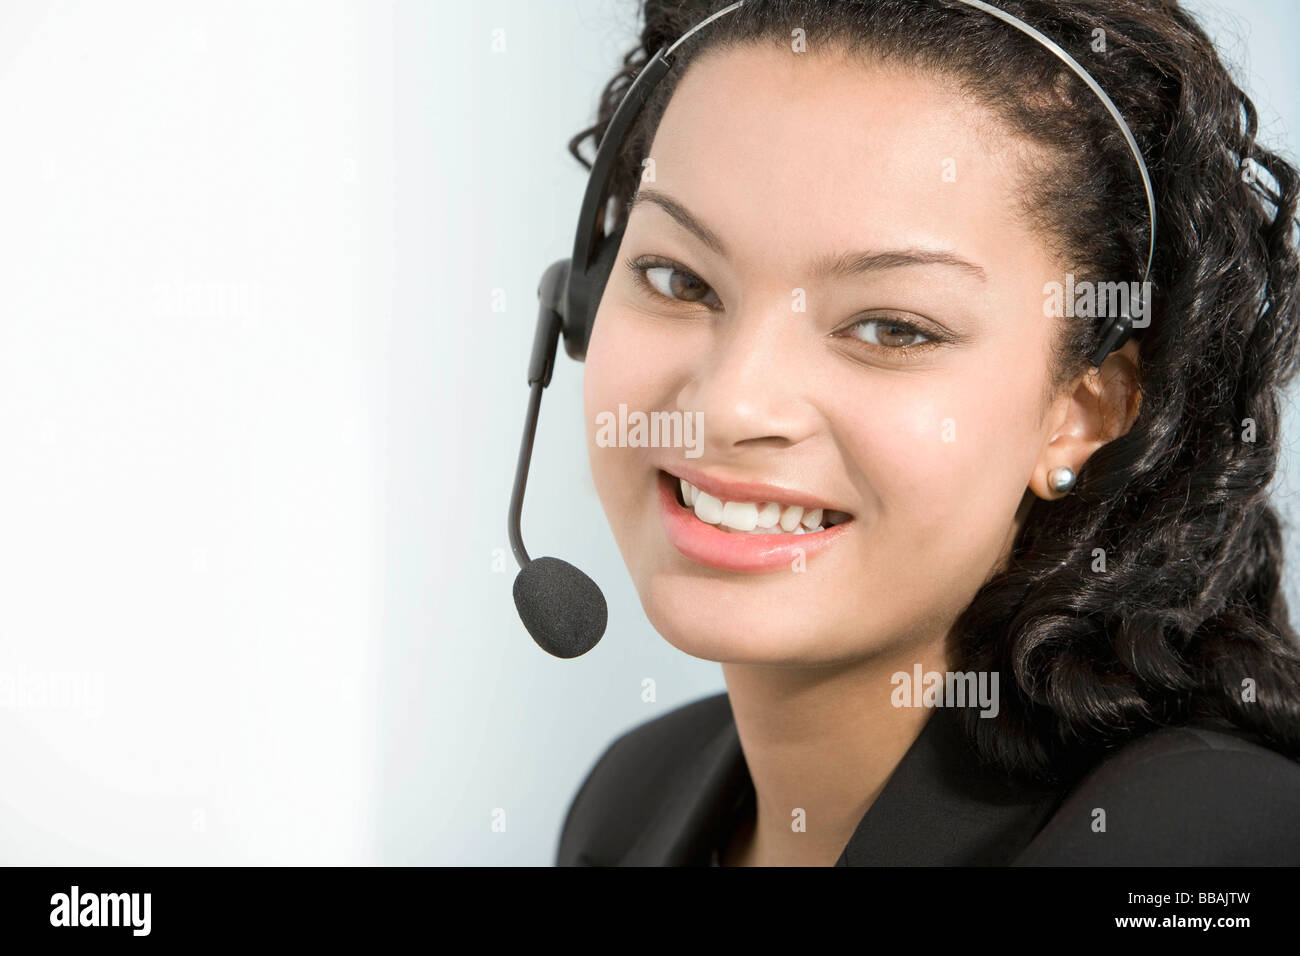 A telephone operator smiling to camera - Stock Image